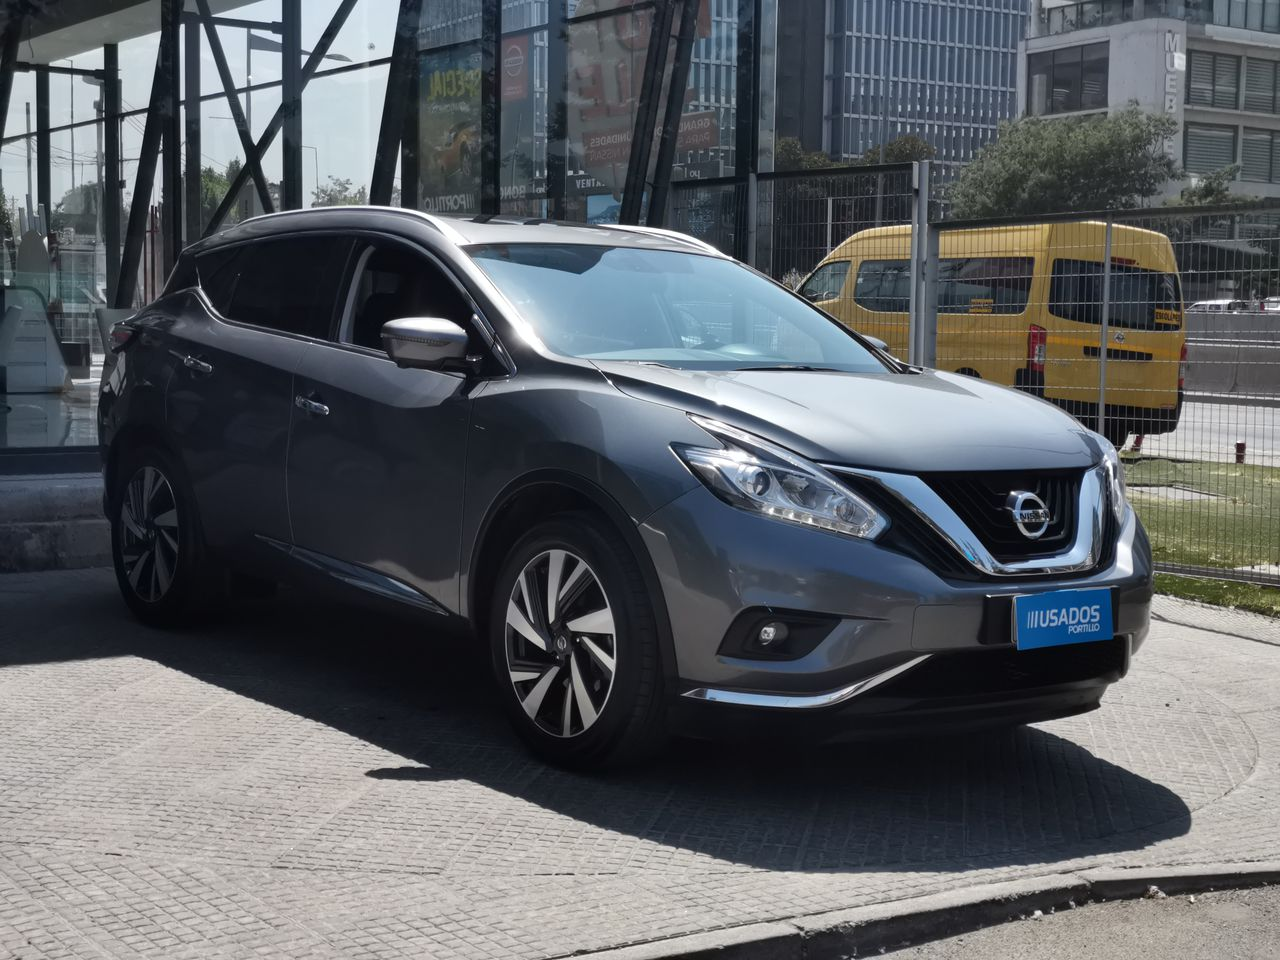 Nissan Murano 4x4 3.5 At 2019  Usado en Automotriz Portillo